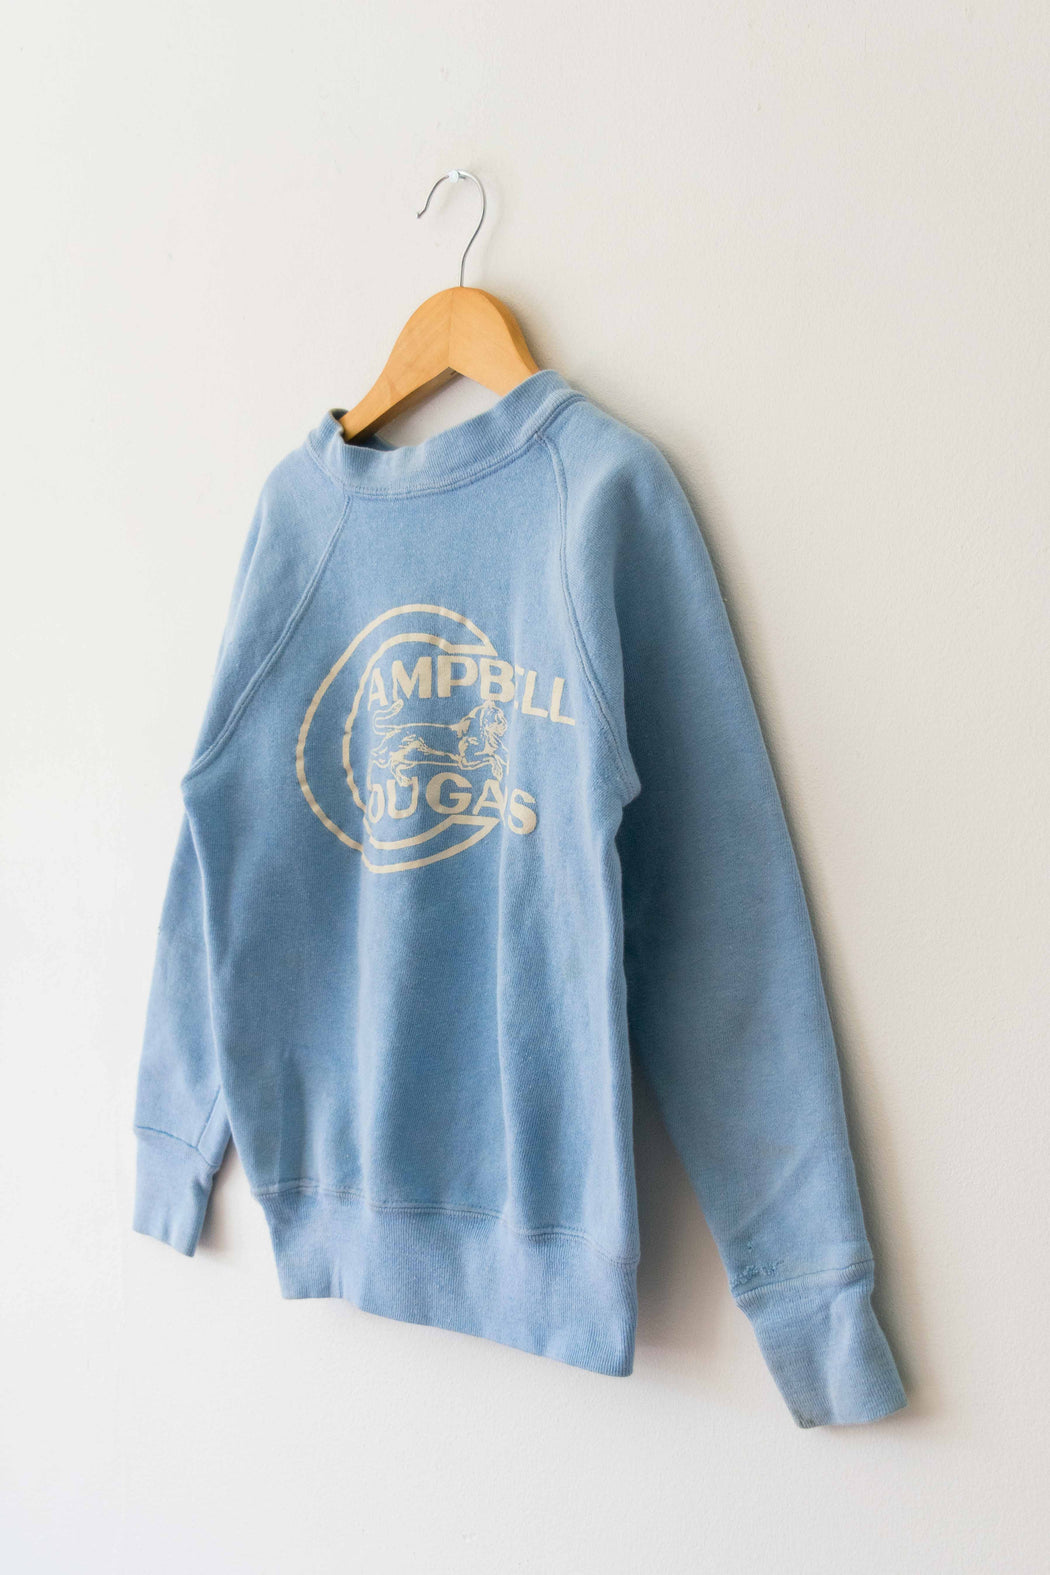 Kids Light Blue Campbell Cougars Crewneck